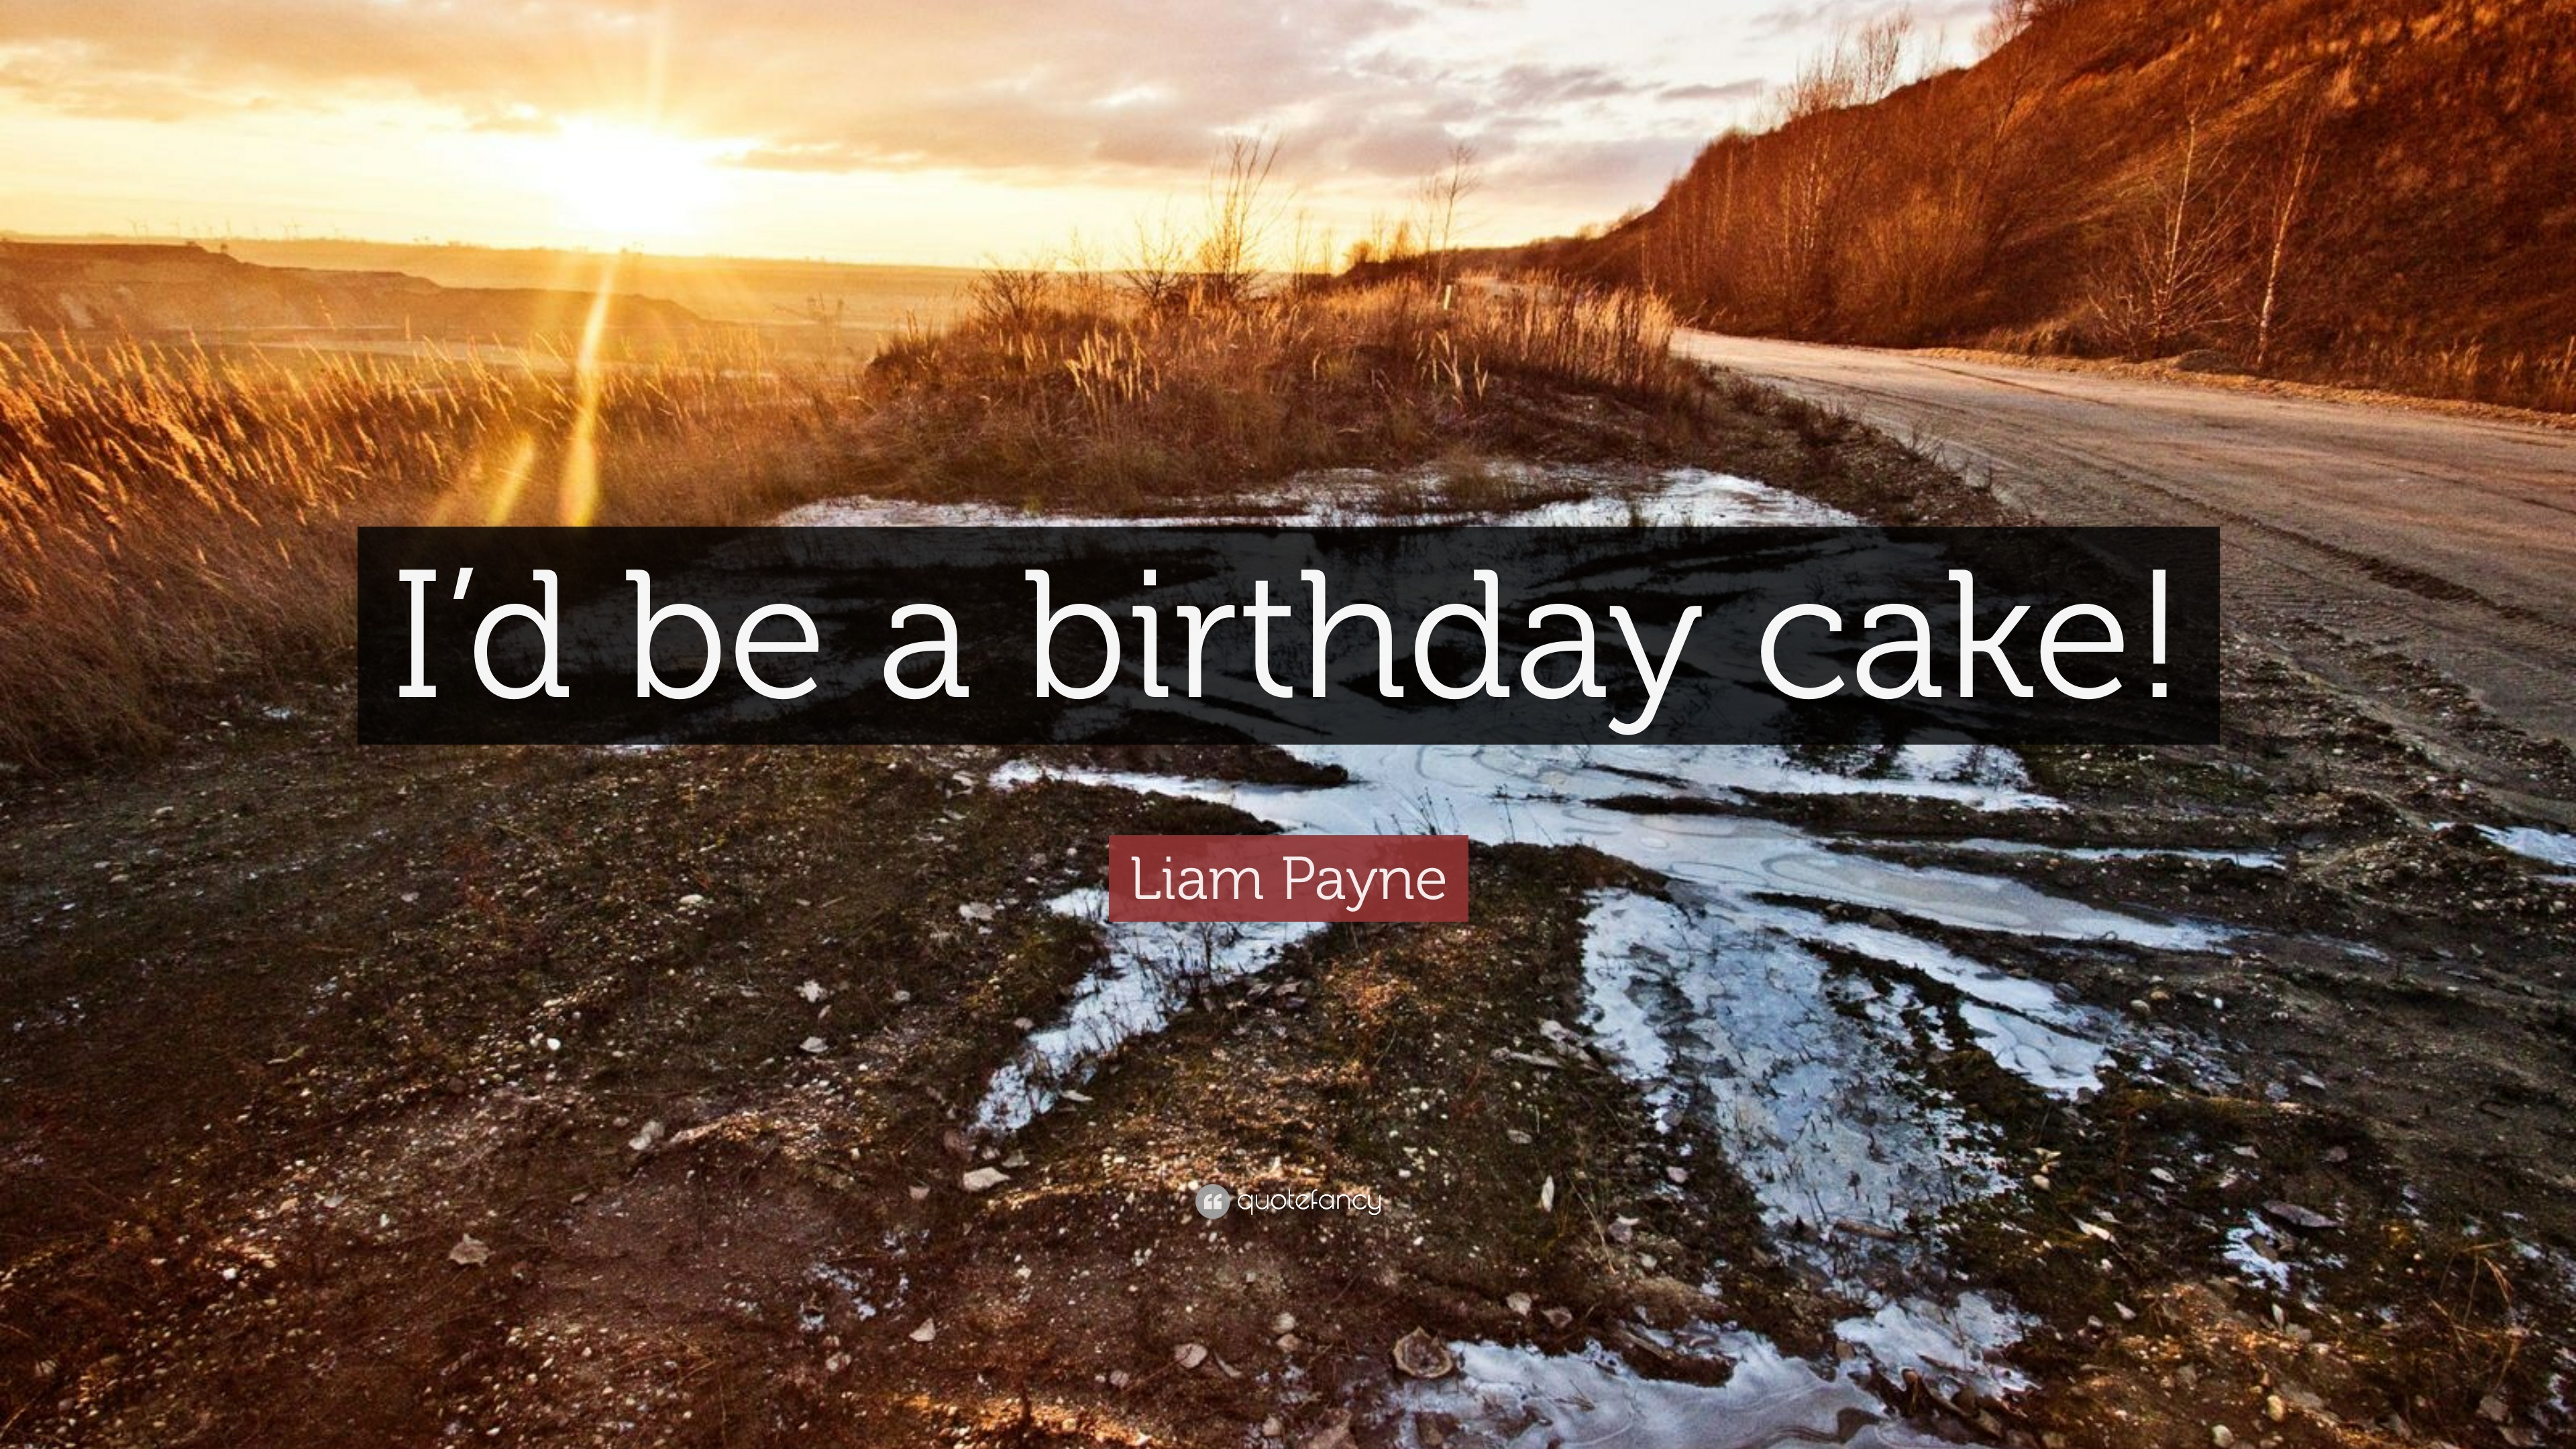 Superb Liam Payne Quote Id Be A Birthday Cake 10 Wallpapers Funny Birthday Cards Online Hendilapandamsfinfo